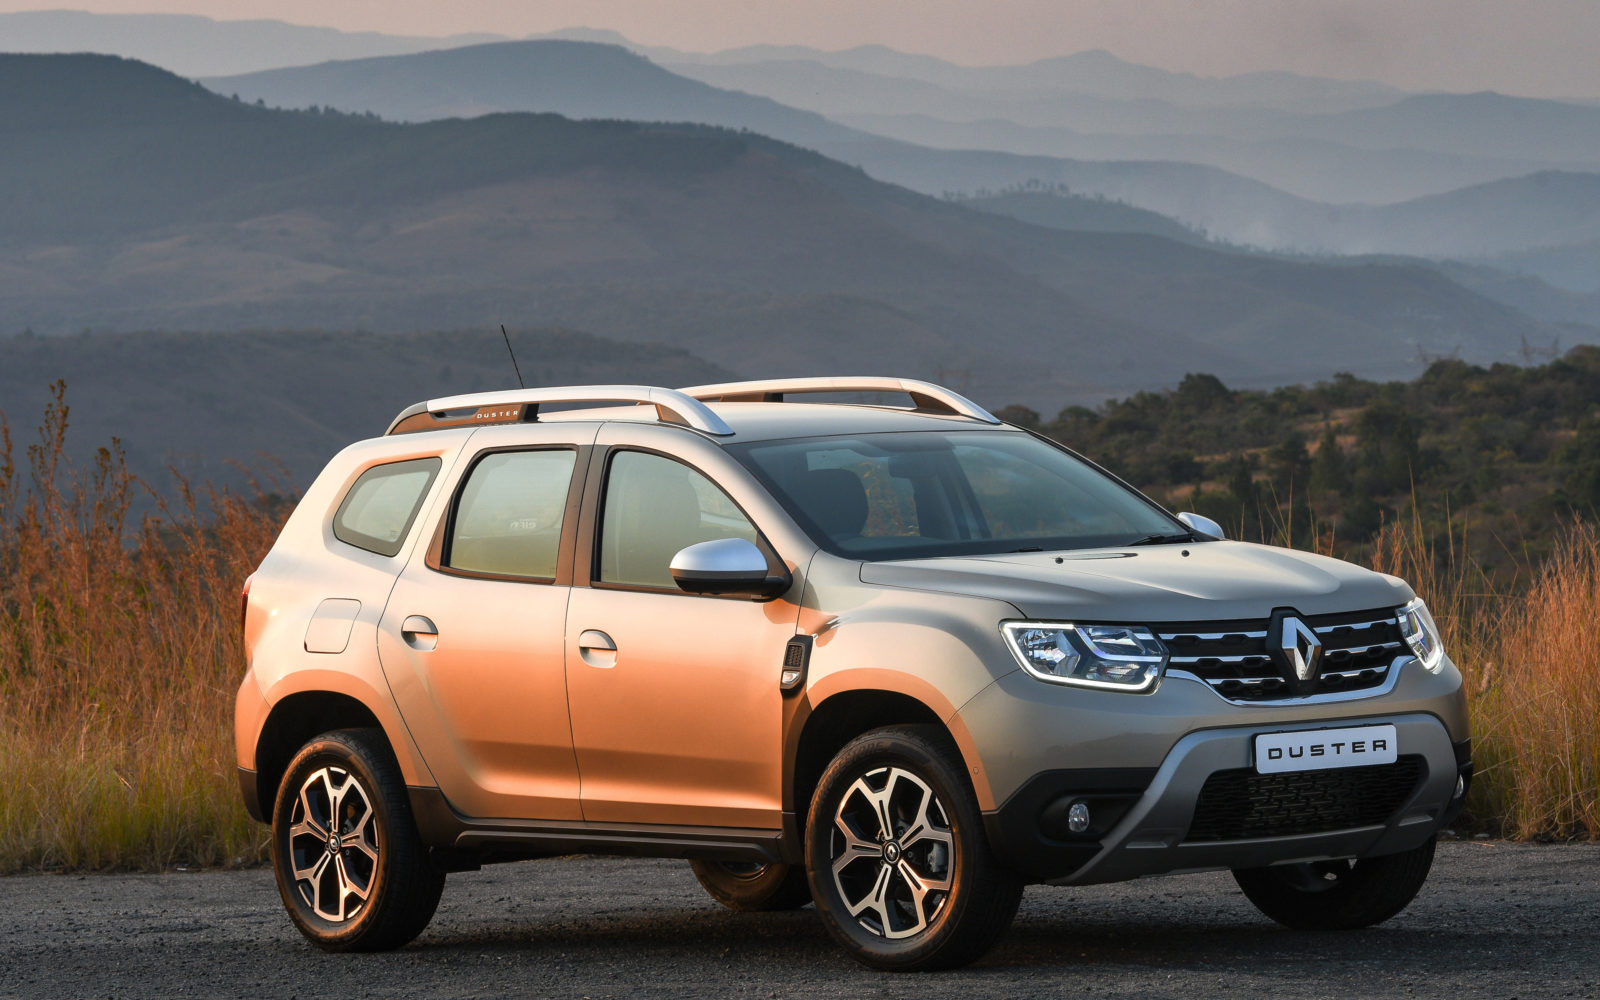 32a9699b213 Renault Duster 1.5 dCi EDC: When sensible is fun, too